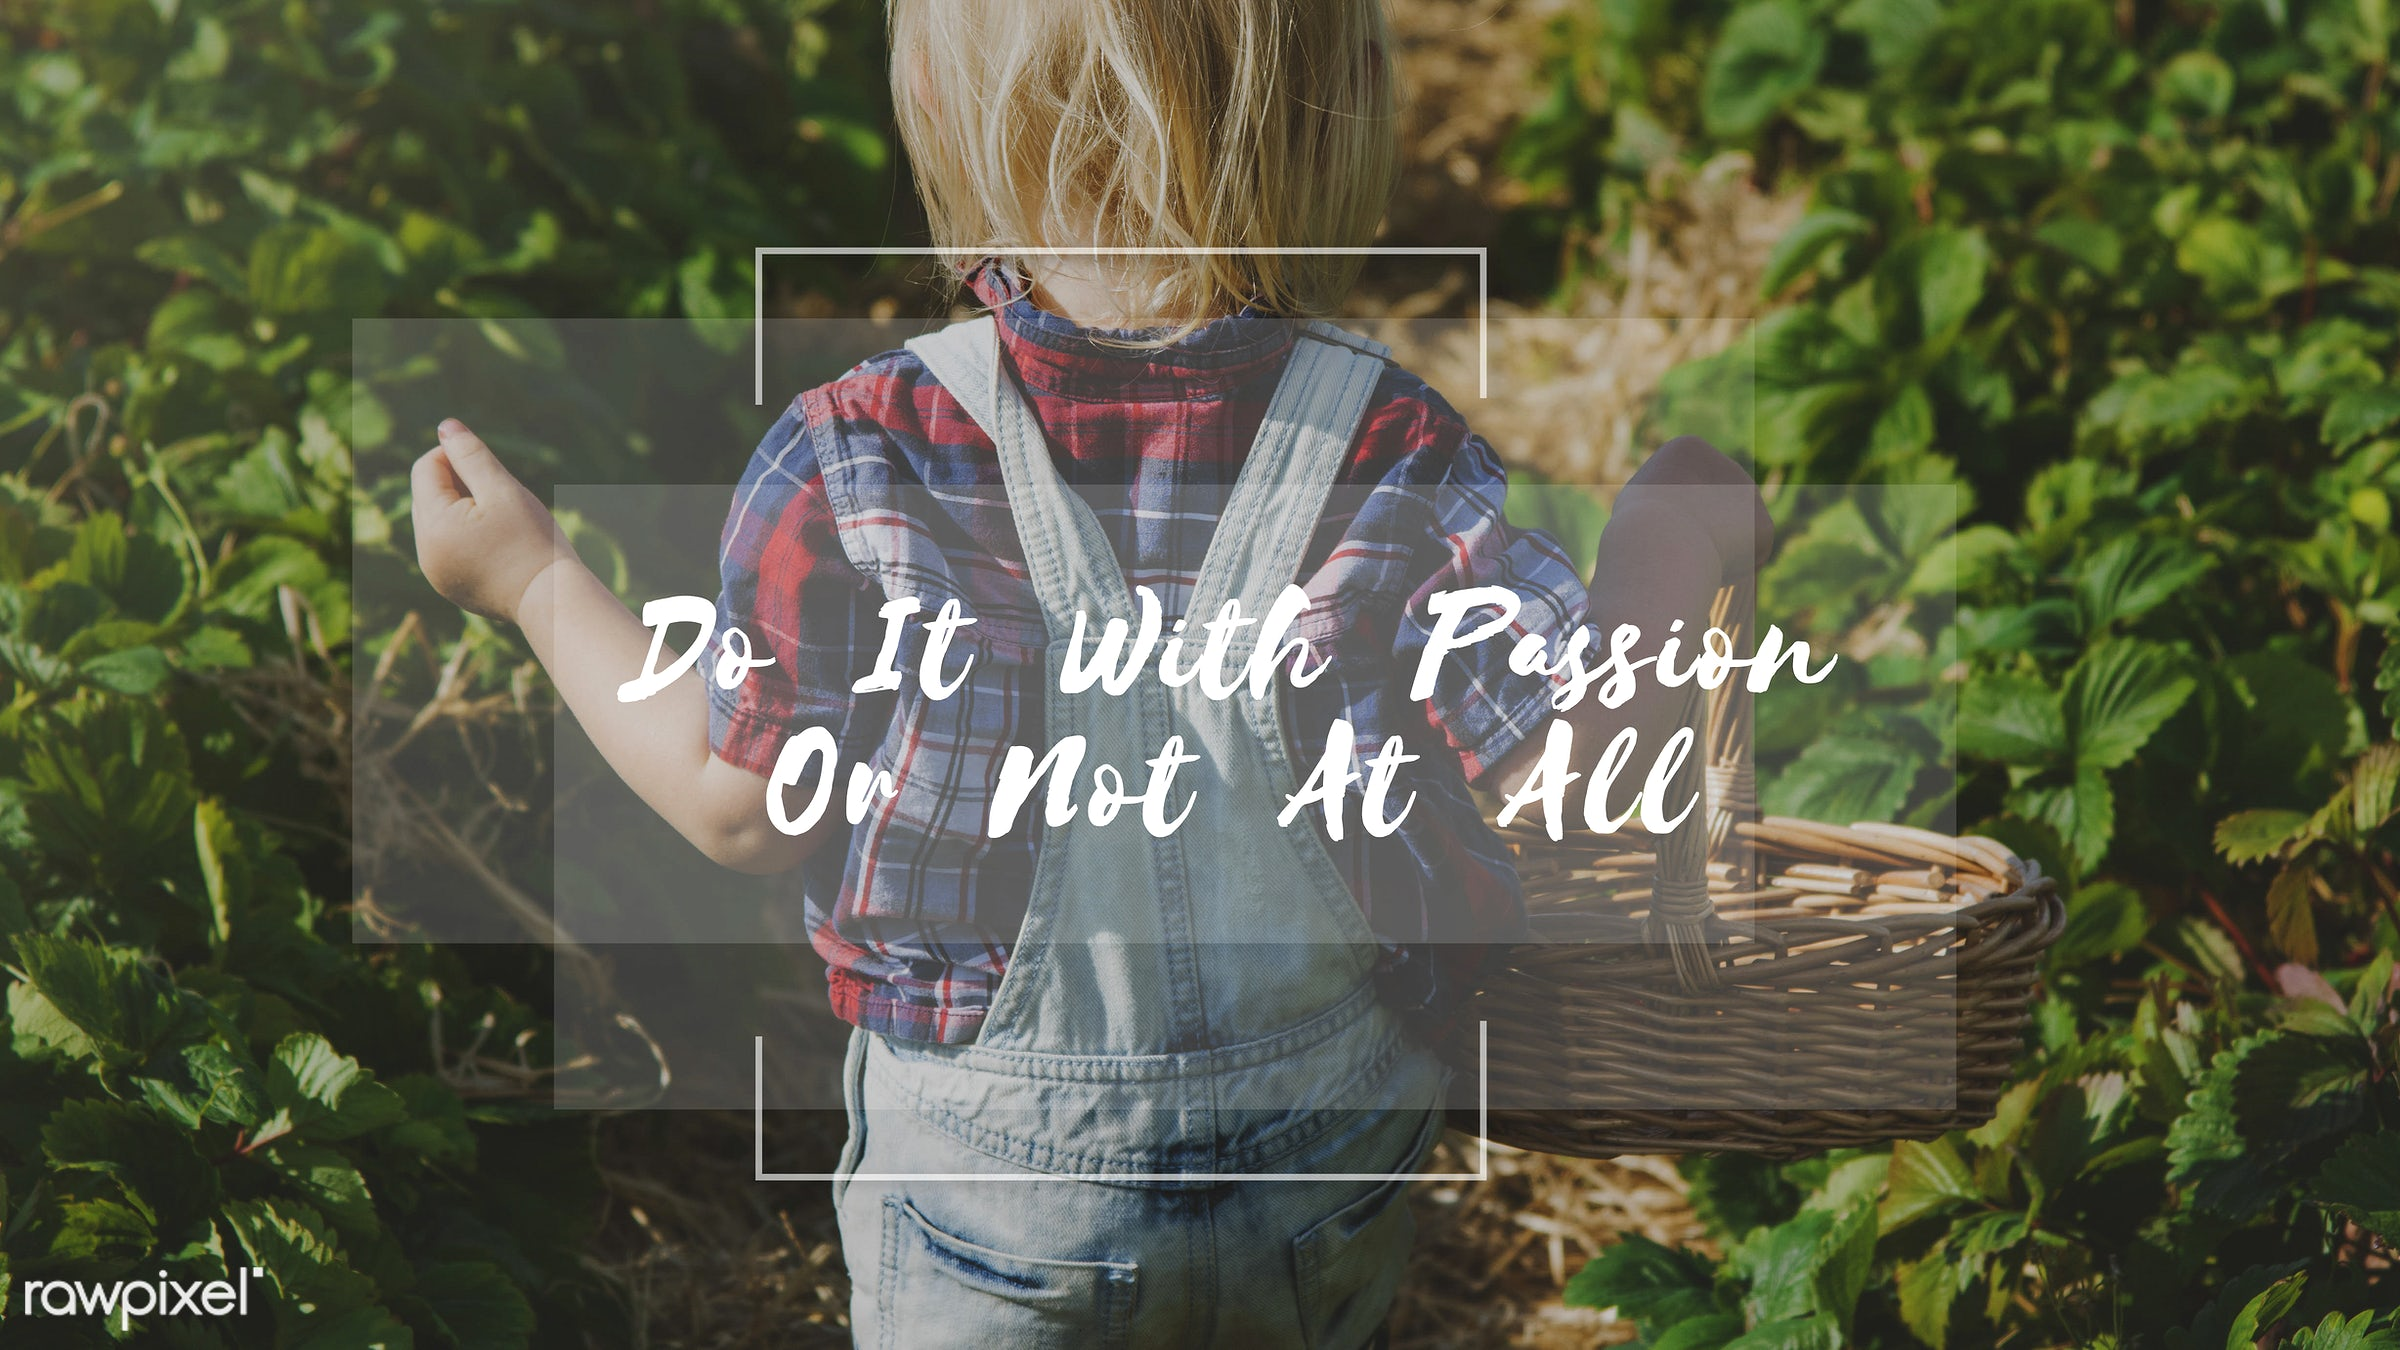 action, attitude, basket, blonde, boy, caucasian, change, dare, do it, dungarees, farm, freedom, fruit, fun, good, graphic,...